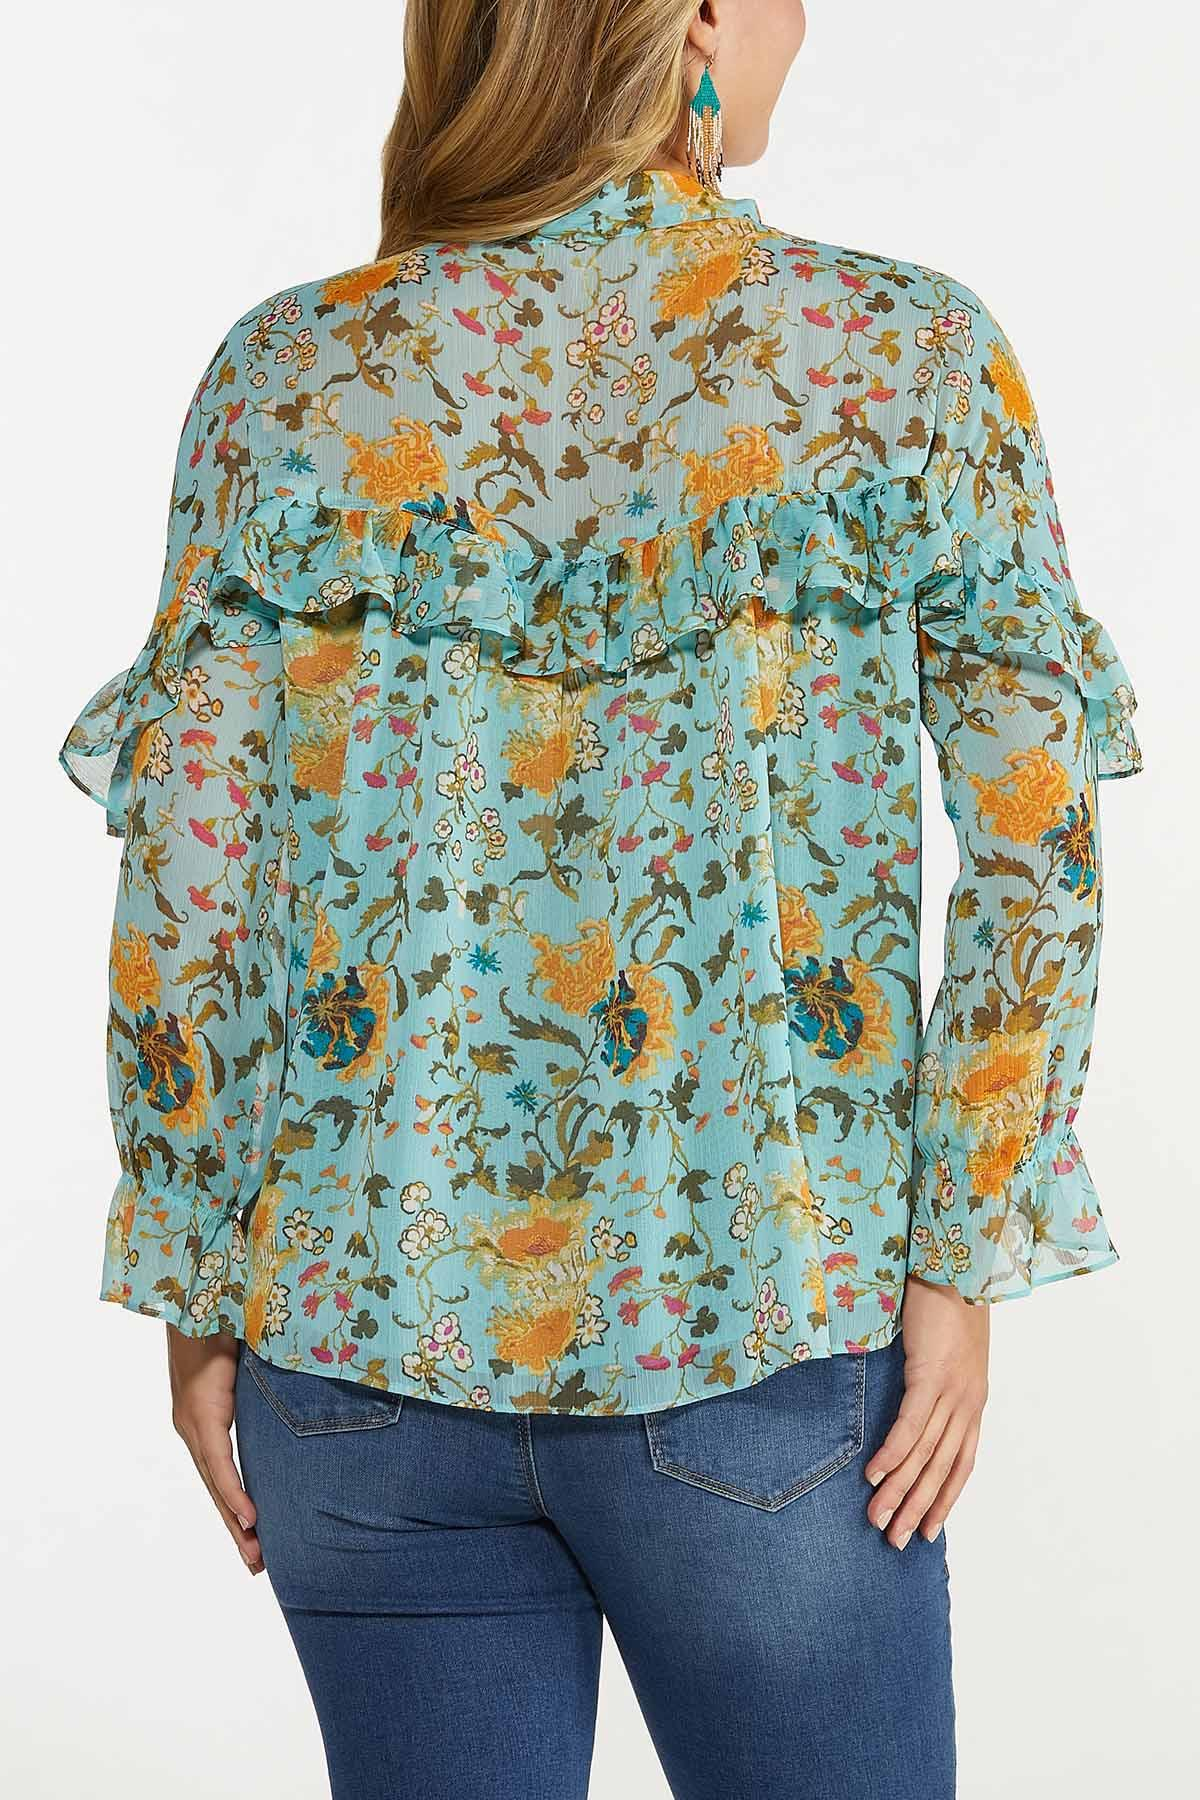 Plus Size Ruffled Teal Floral Top (Item #44653581)